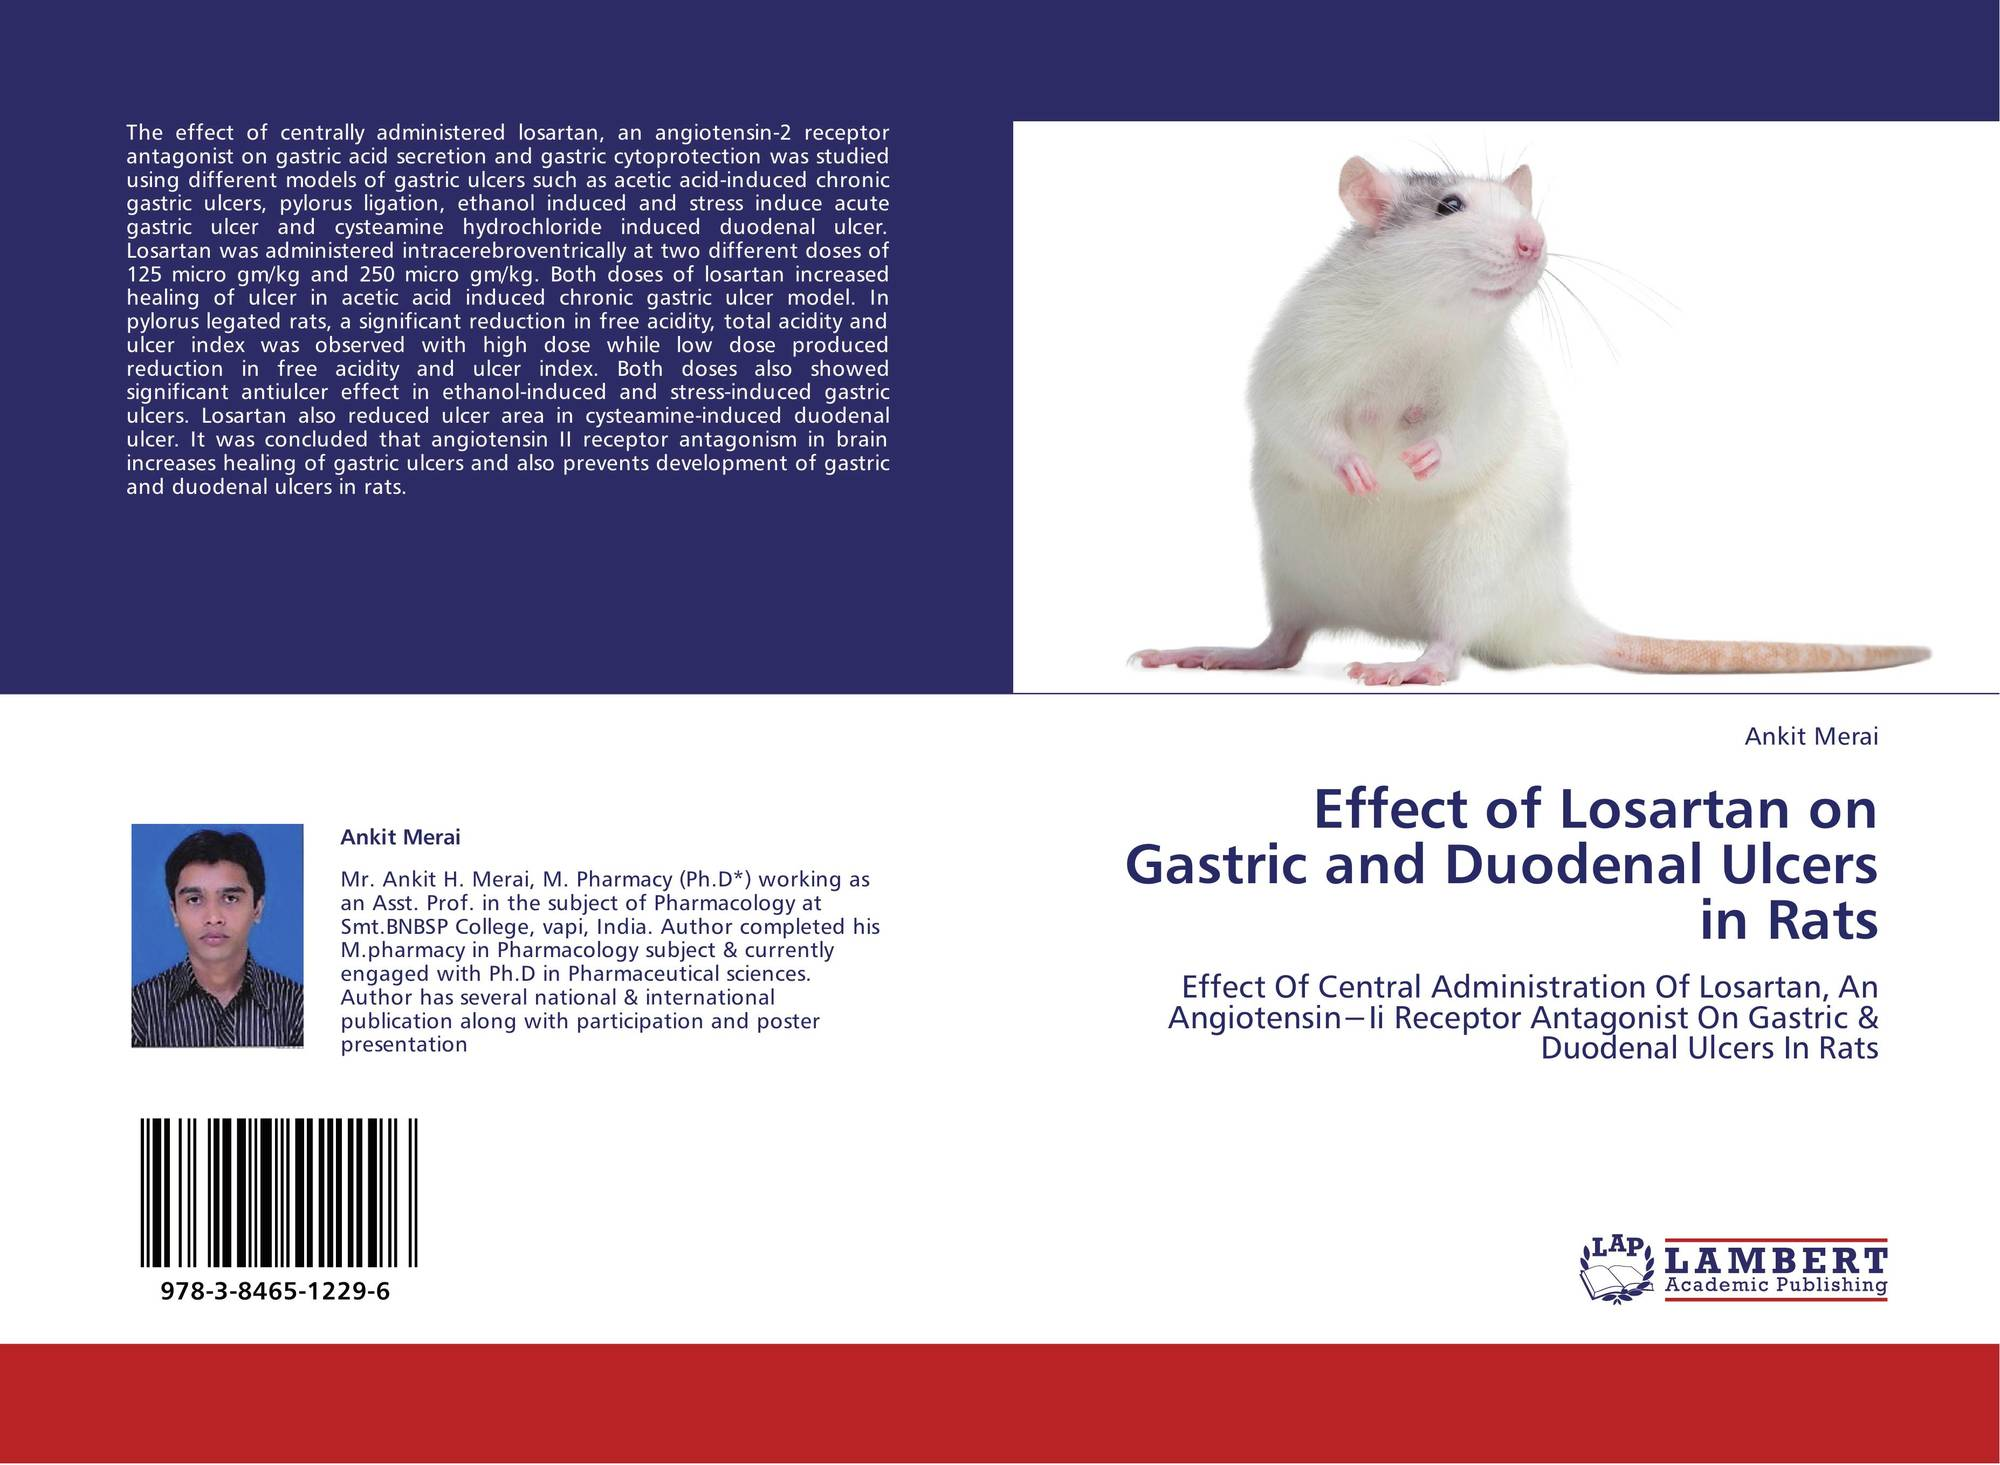 """gastritis and its consequence Introduction the clinical relationship between gastric inflammatory diseases and pernicious anemia was foreseen early in the last century in 1935, in """"gastritis and its consequences"""", knud faber wrote: """"many observations agree with the hypothesis of gastritis as the cause of the anacidity, which is generally found in patients with pernicious anaemia."""